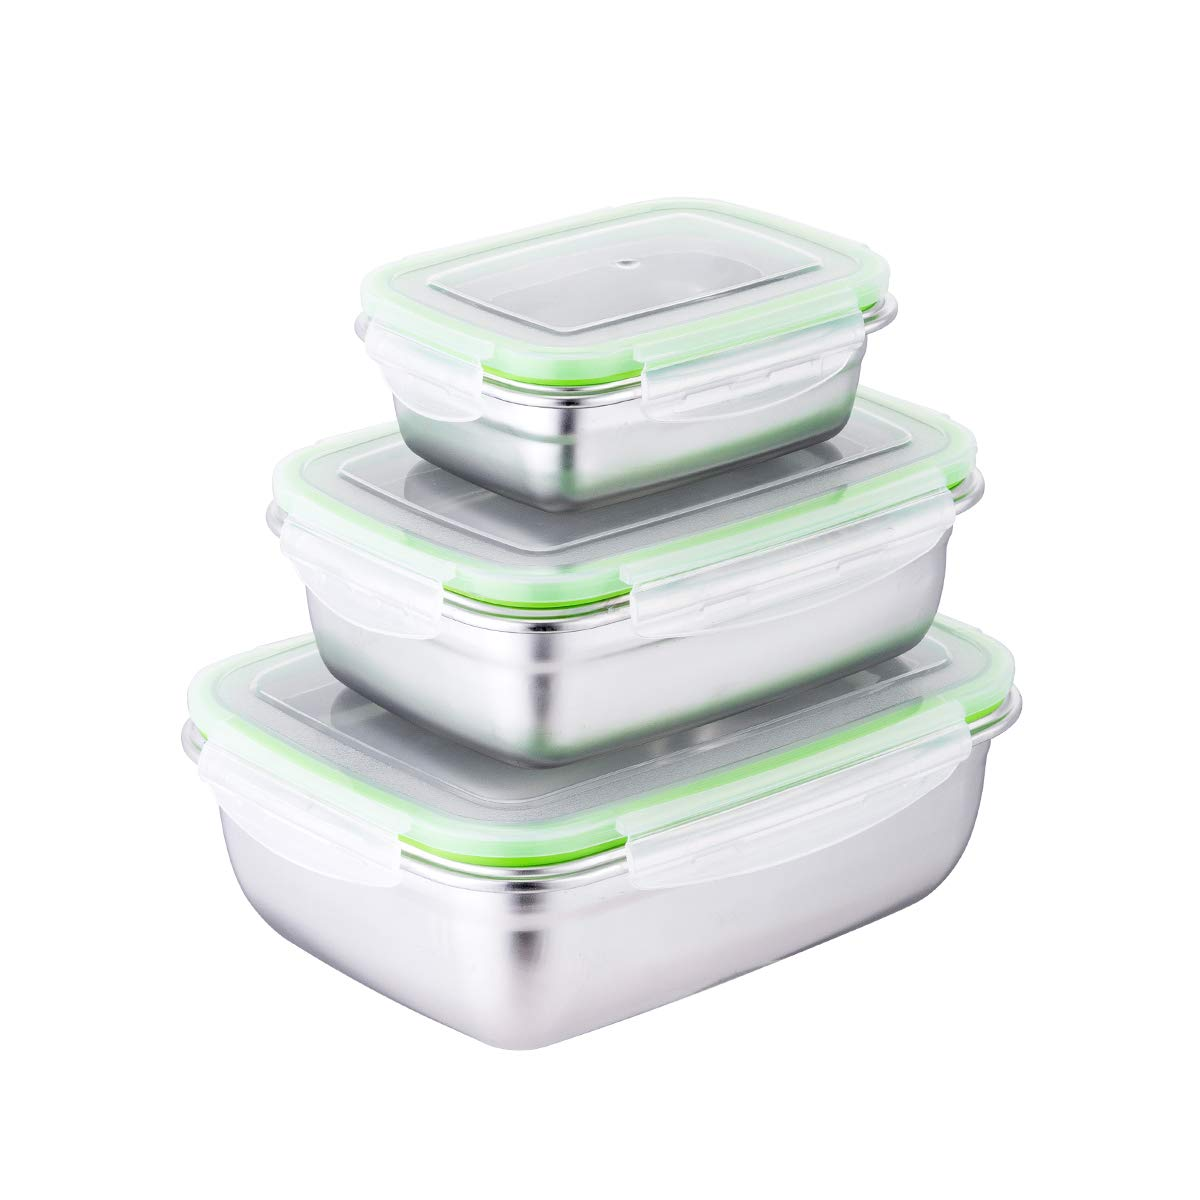 Stainless Steel Food Storage Container Set - Kacierr Eco-friendly Airtight Reuseable Snack Container Leakproof Nested Food Storage Box Set (3-pieces, Green)